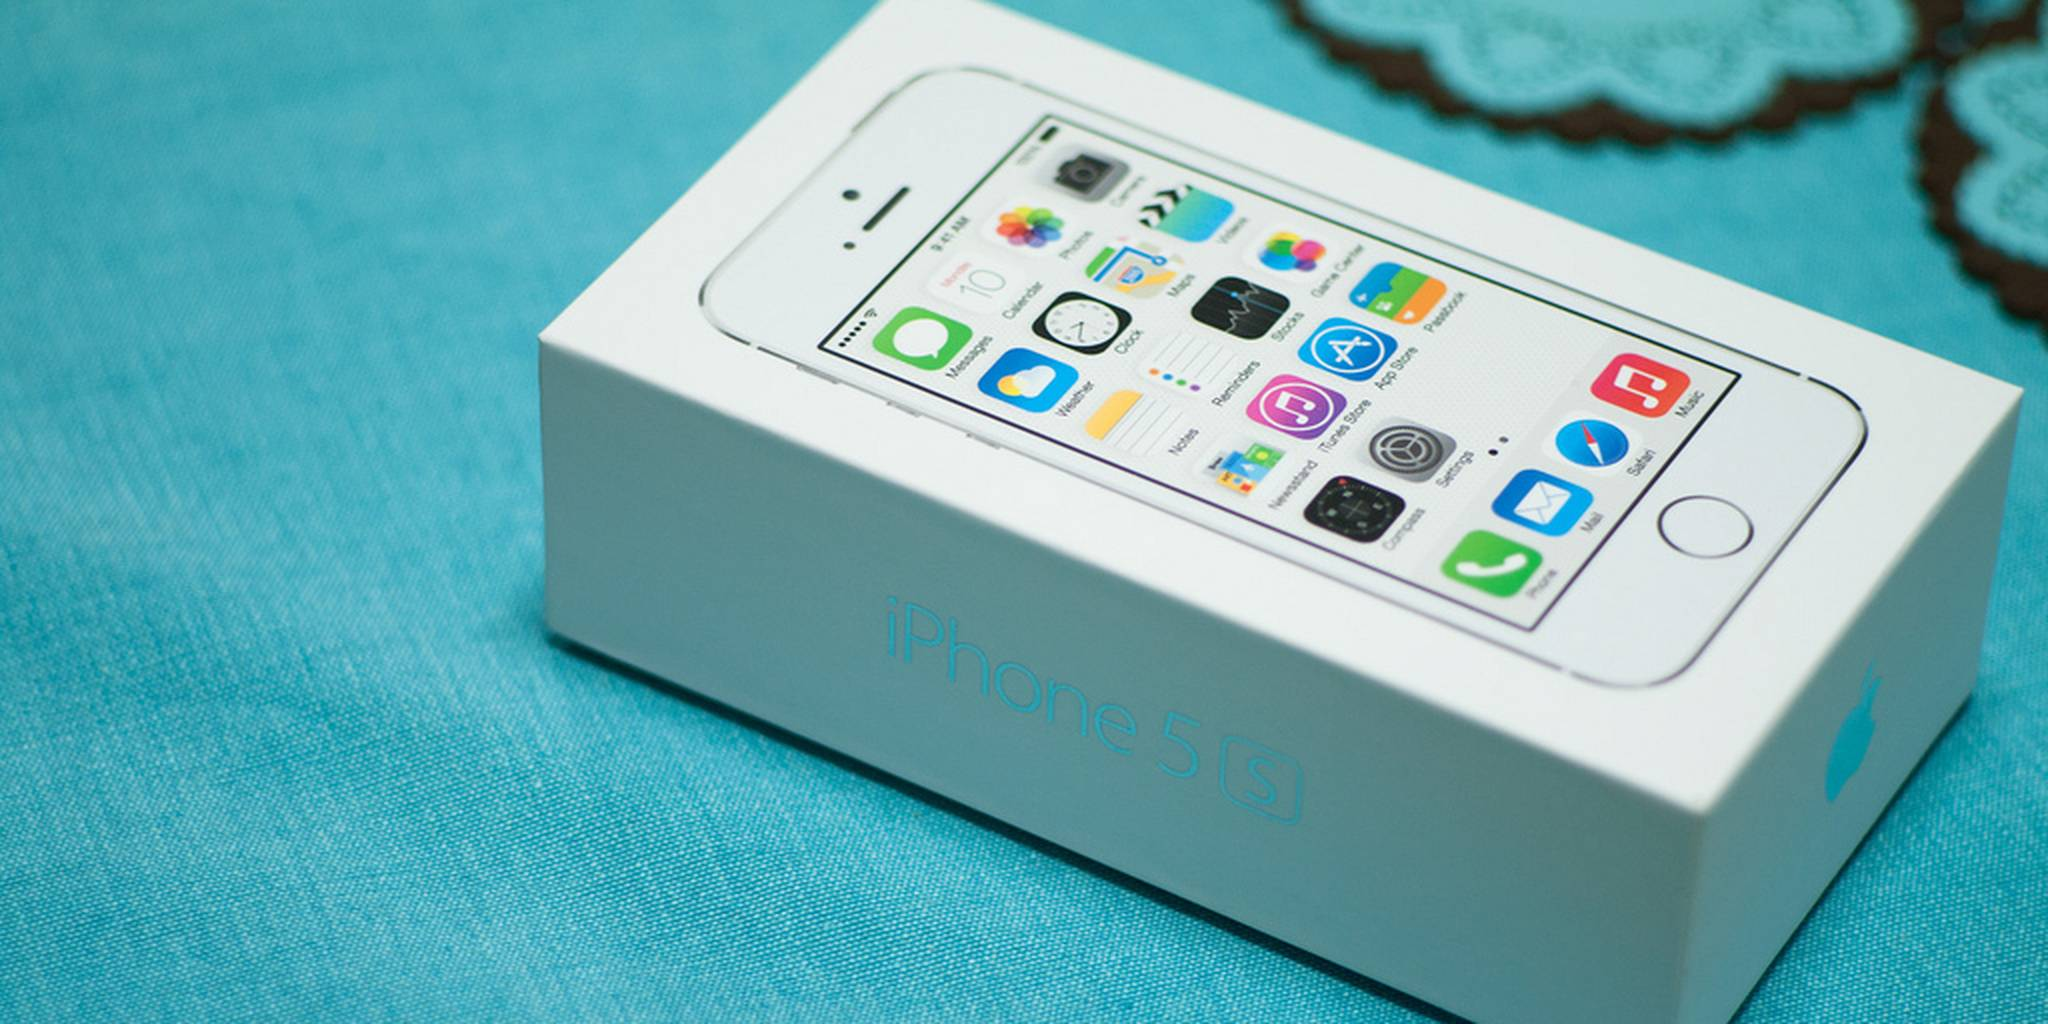 All sizes | iPhone 5s Box | Flickr - Photo Sharing!